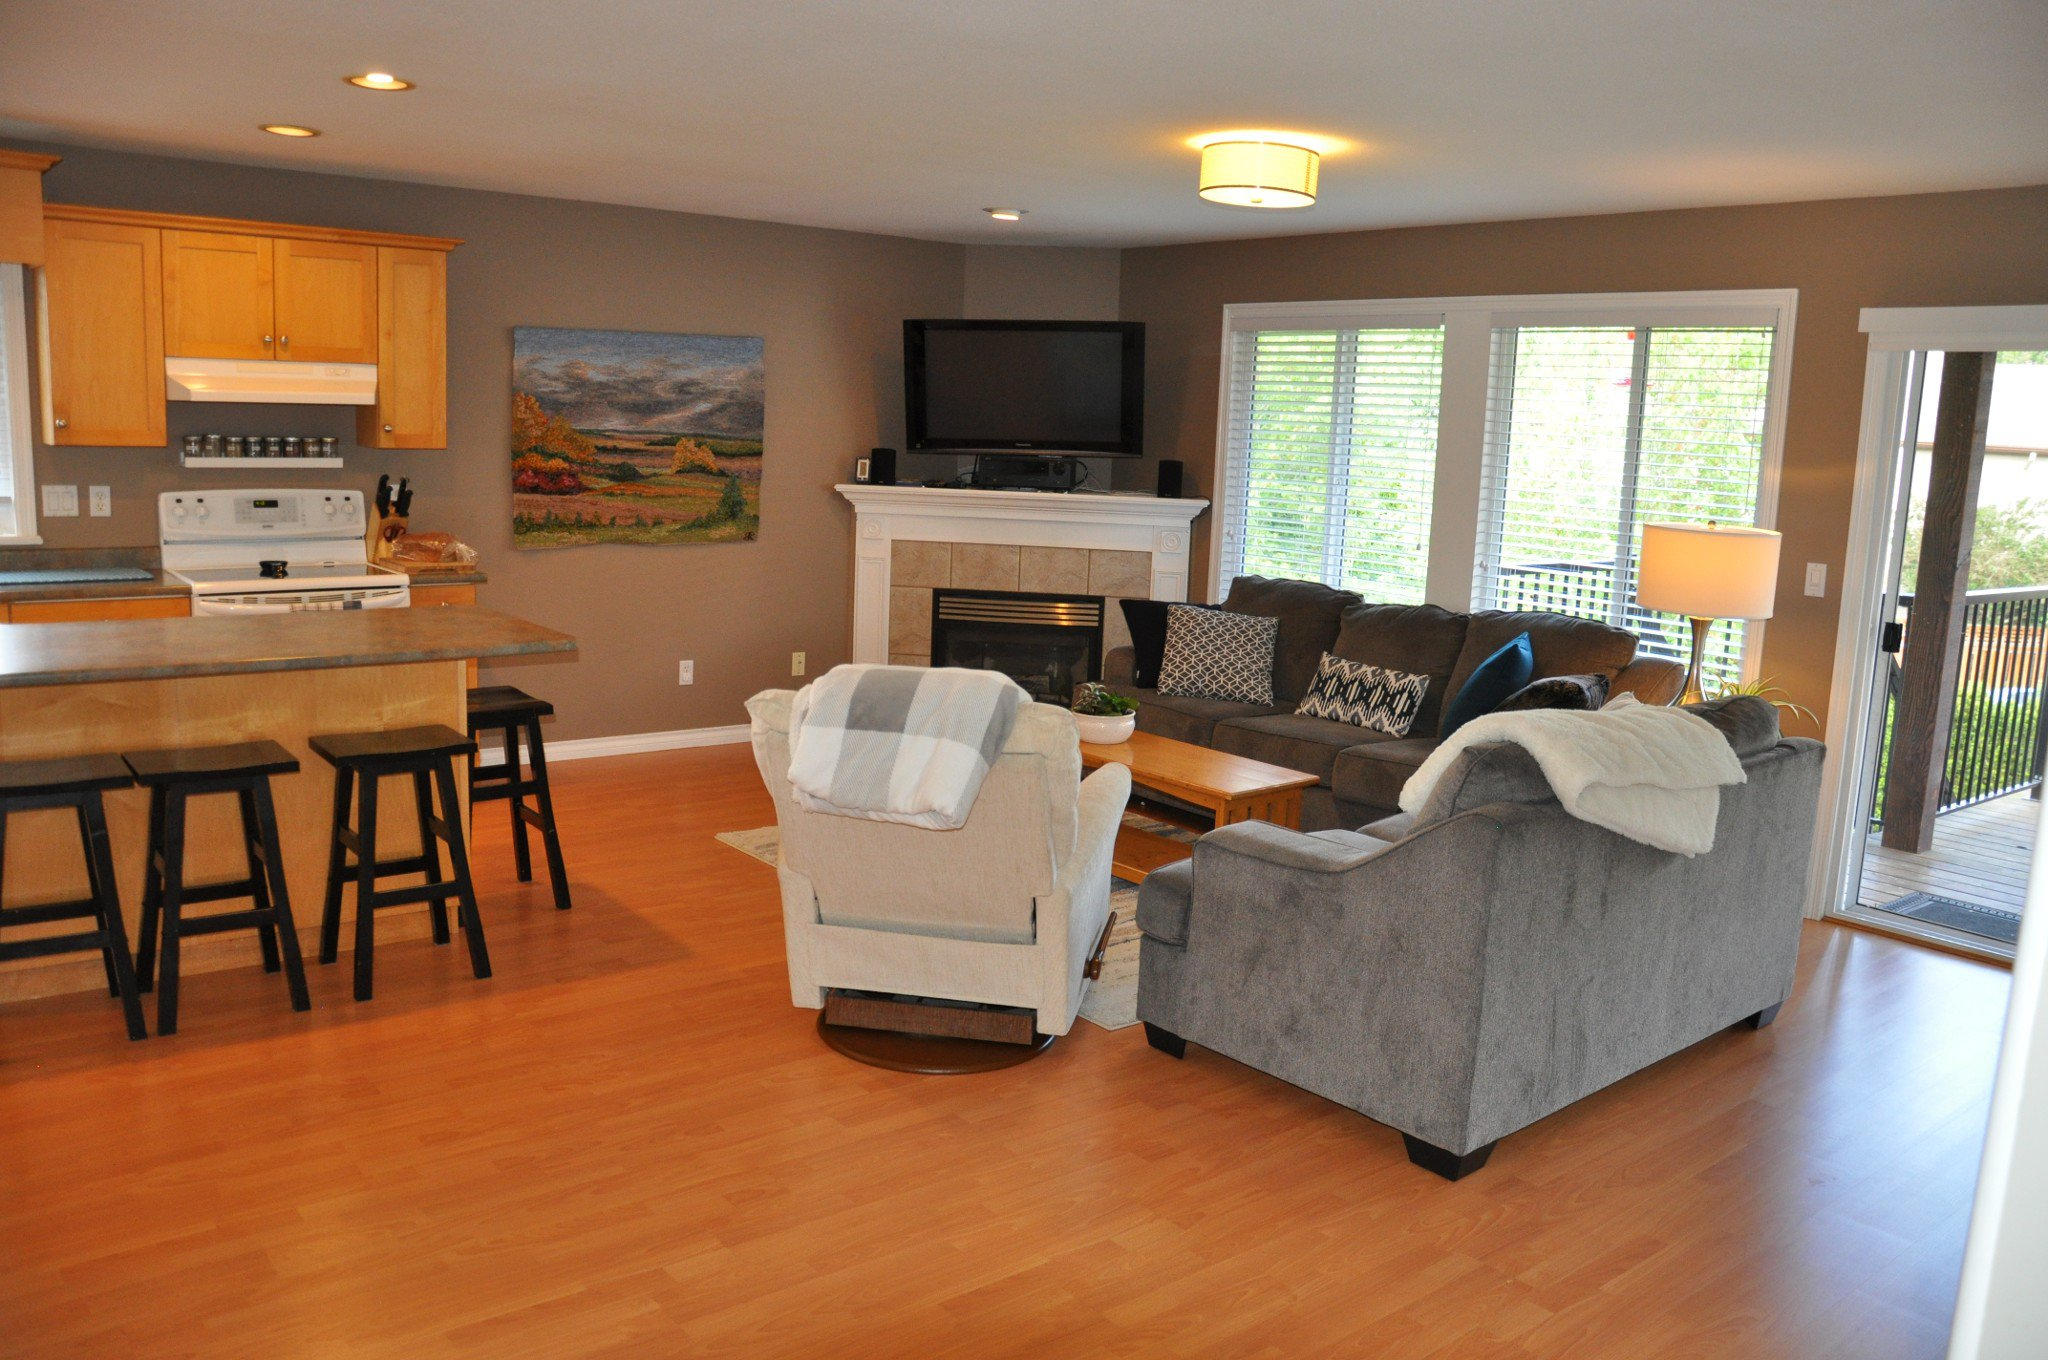 Photo 3: Photos: 4076 Channel St. in Abbotsford: Abbotsford East House for rent